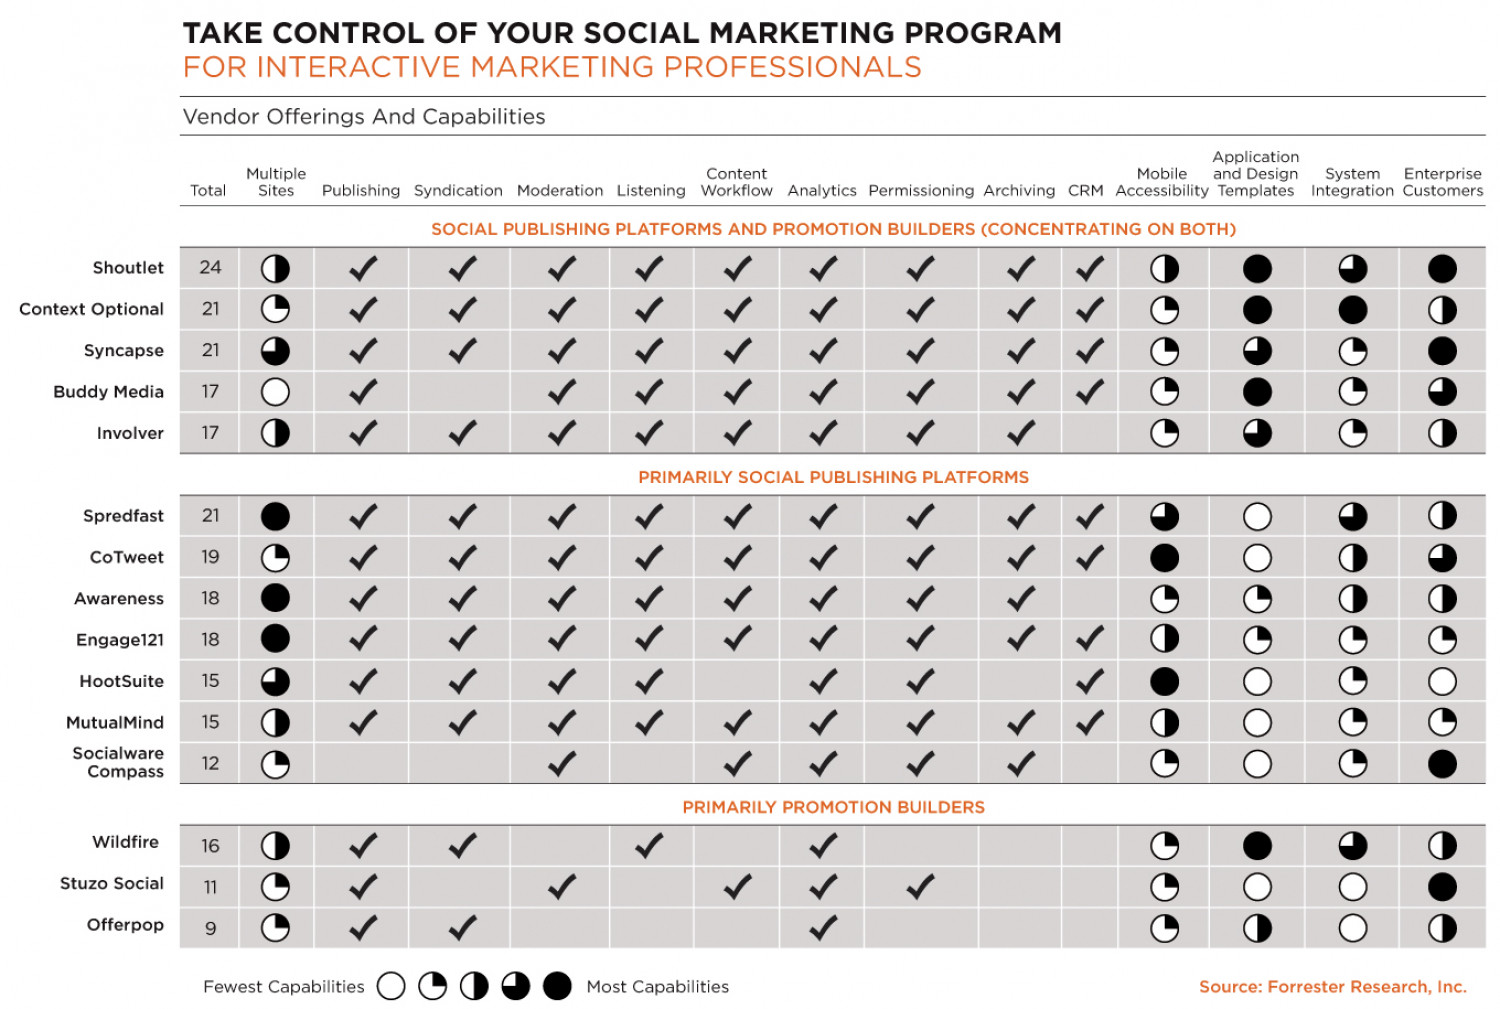 Take Control of Your Social Marketing Program  Infographic